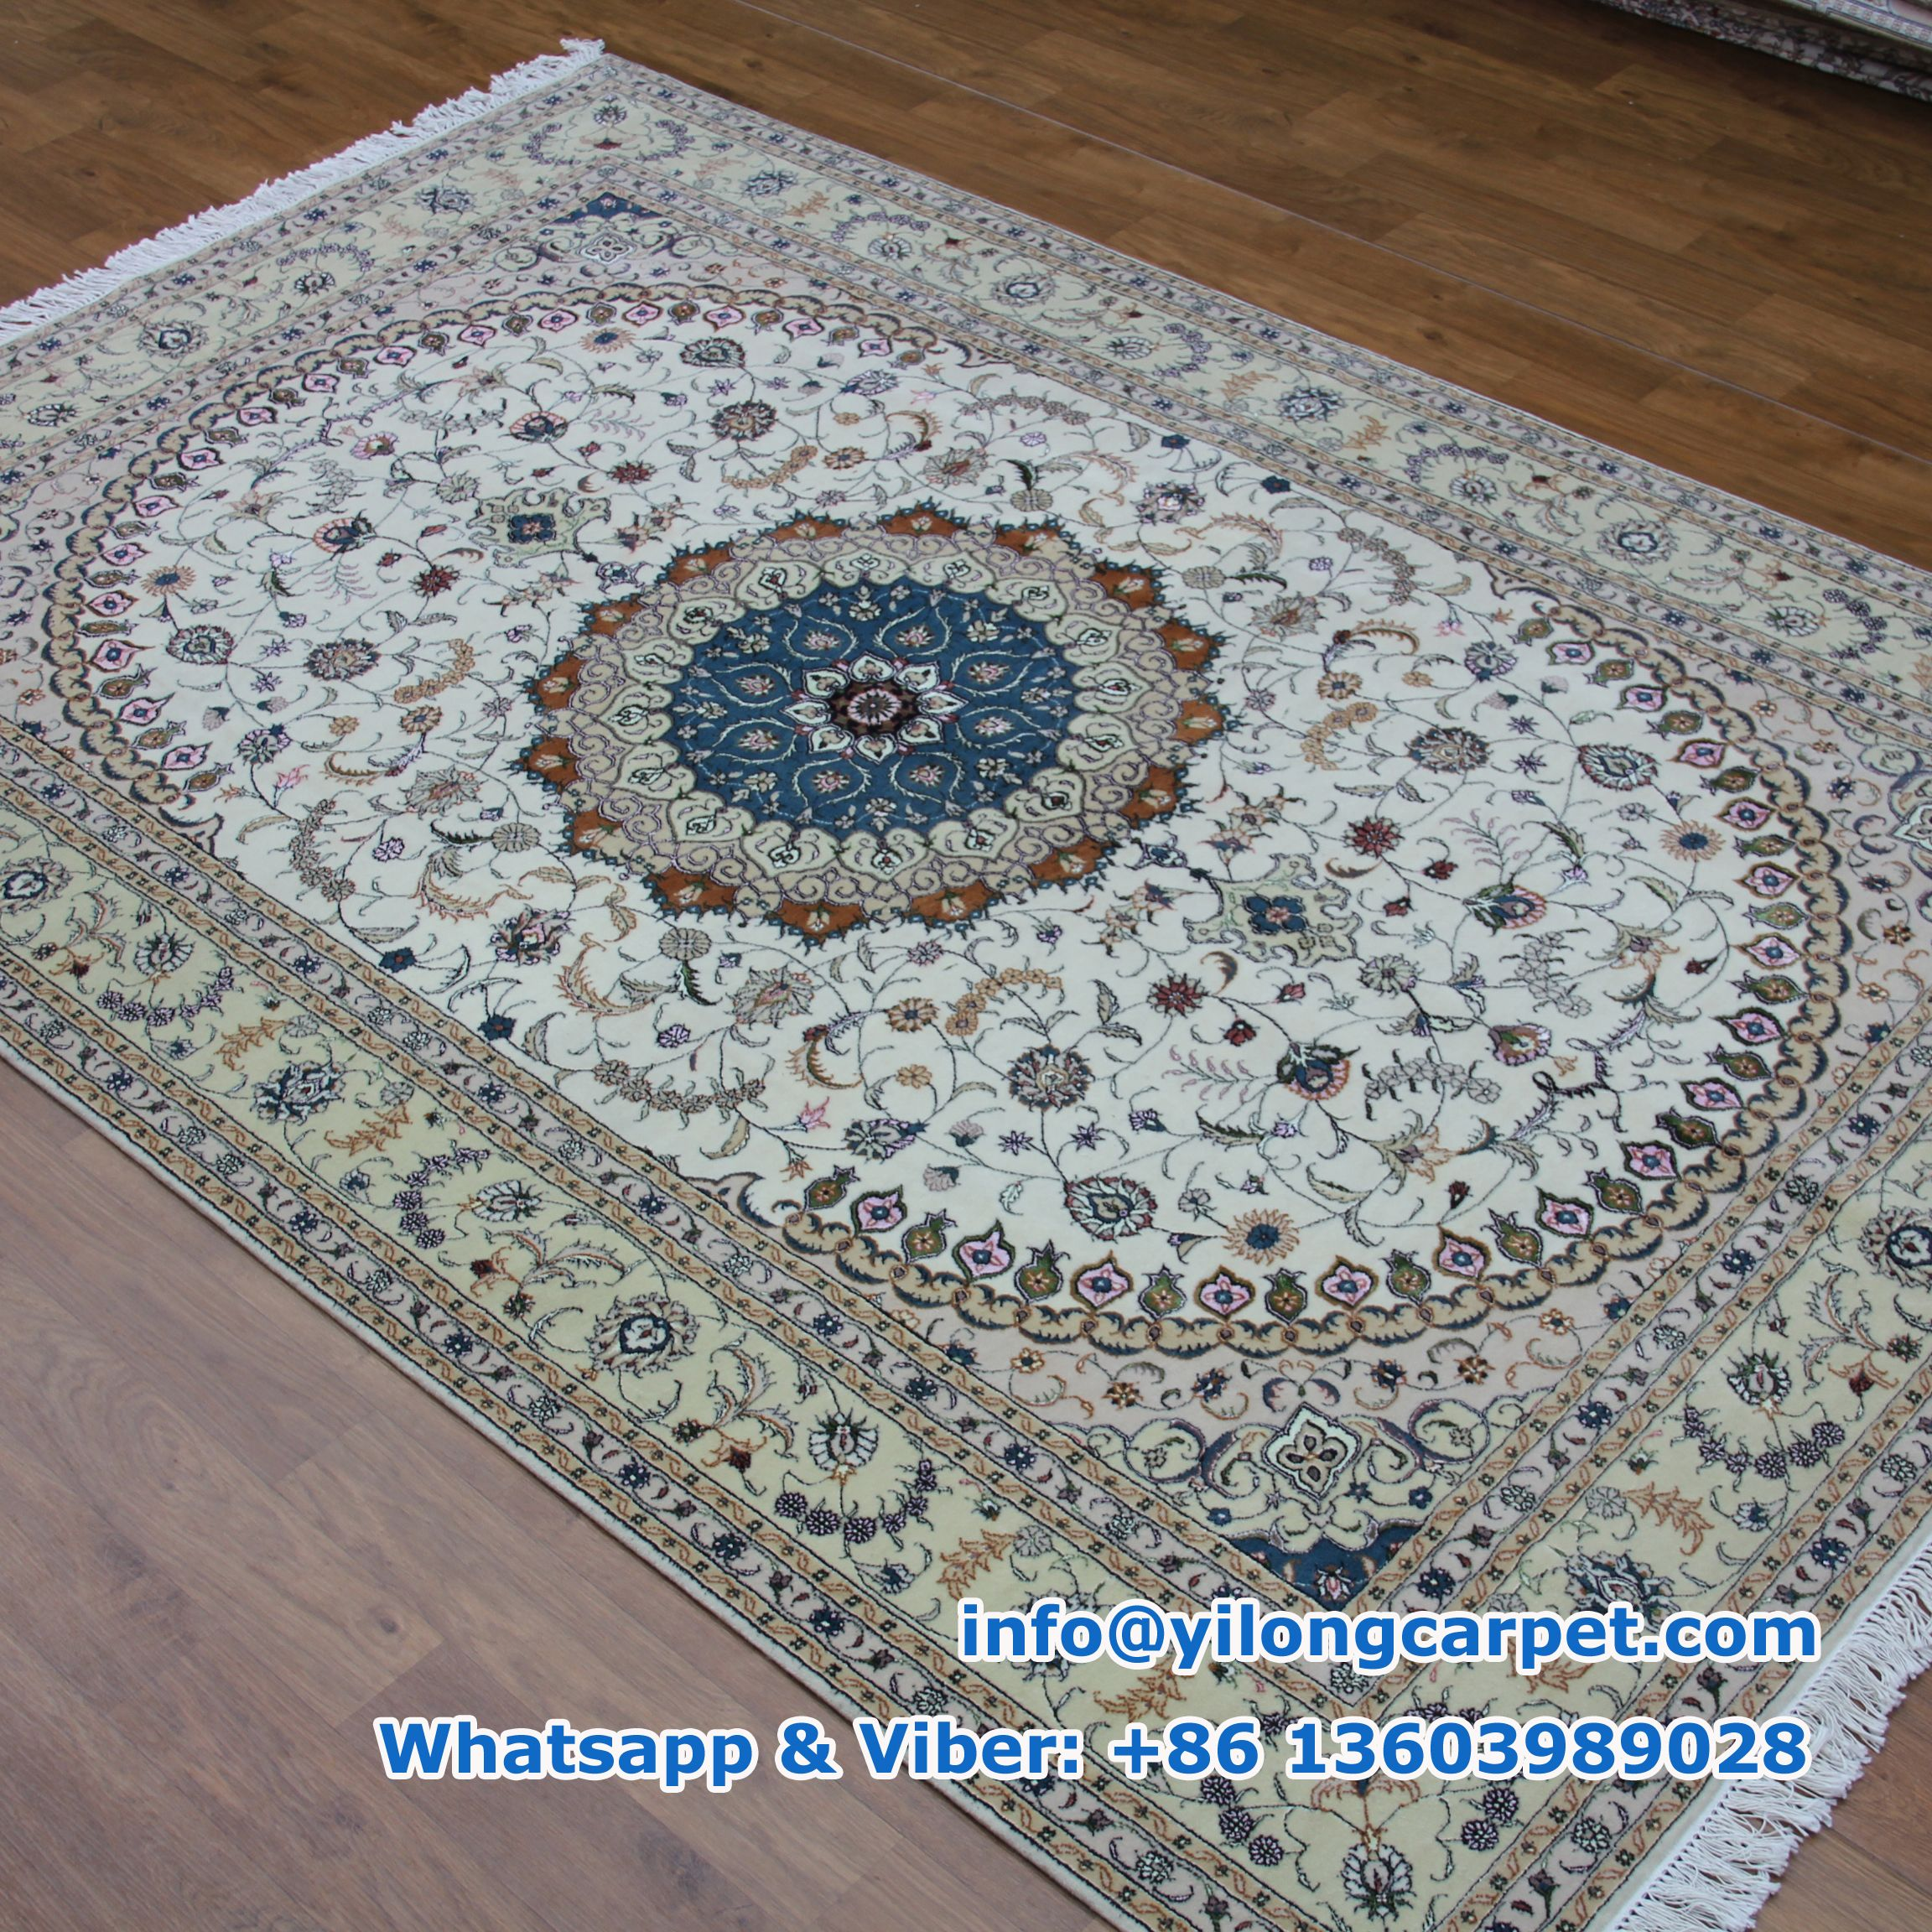 Wsw03 6 X 9 Persian Rug Wool Silk Mixed 200 Lines Handmade Made By Yilong Carpet Color Blue Orange Light Green White Red Pink Yellow